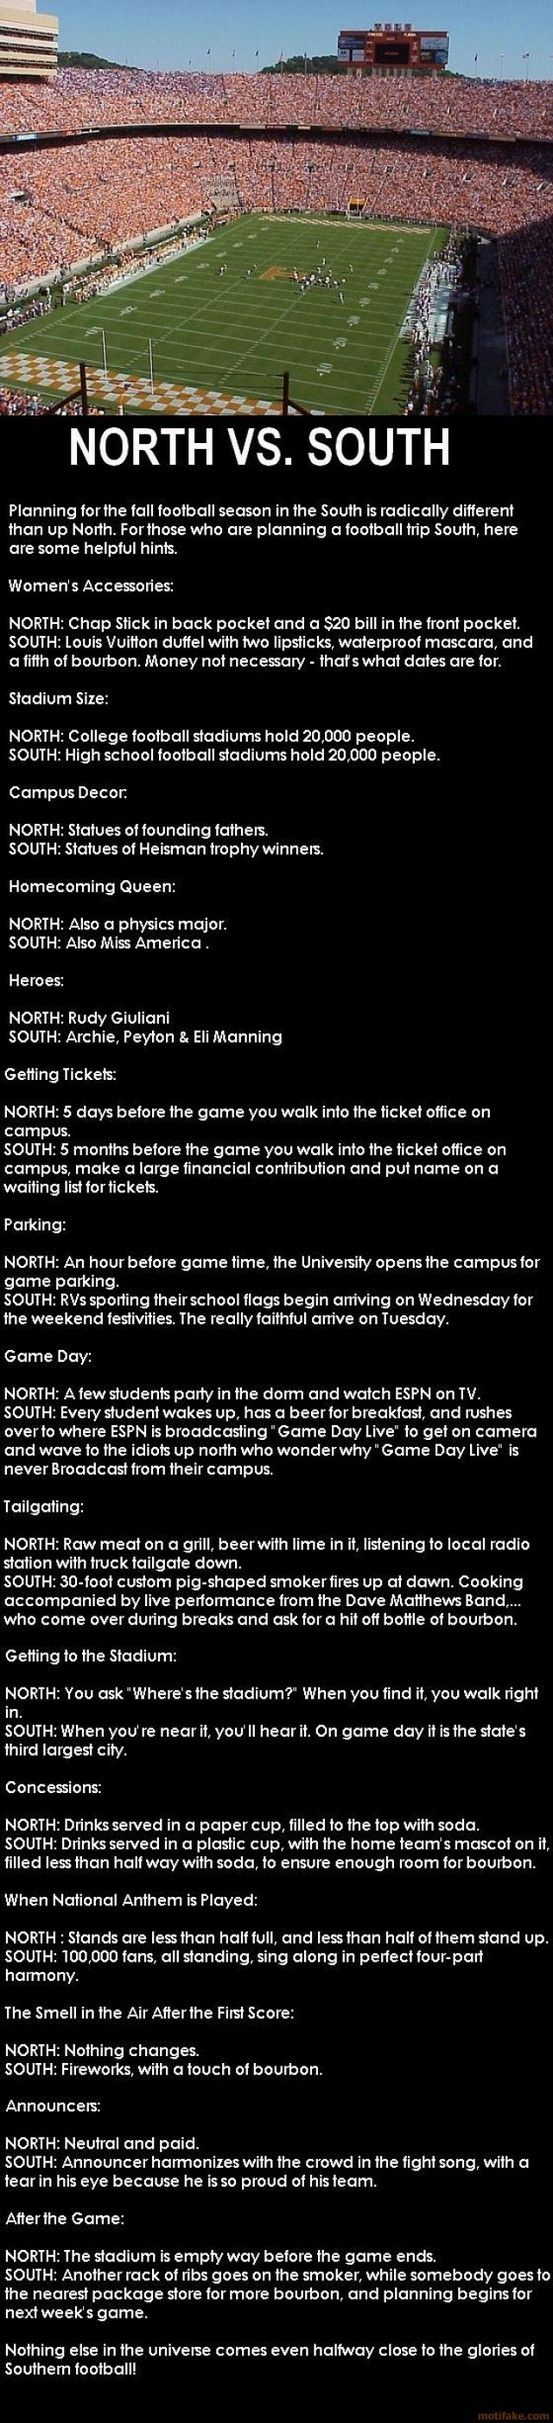 I don't personally know what it's like in the north but this is spot on for UF, FSU and UCF!